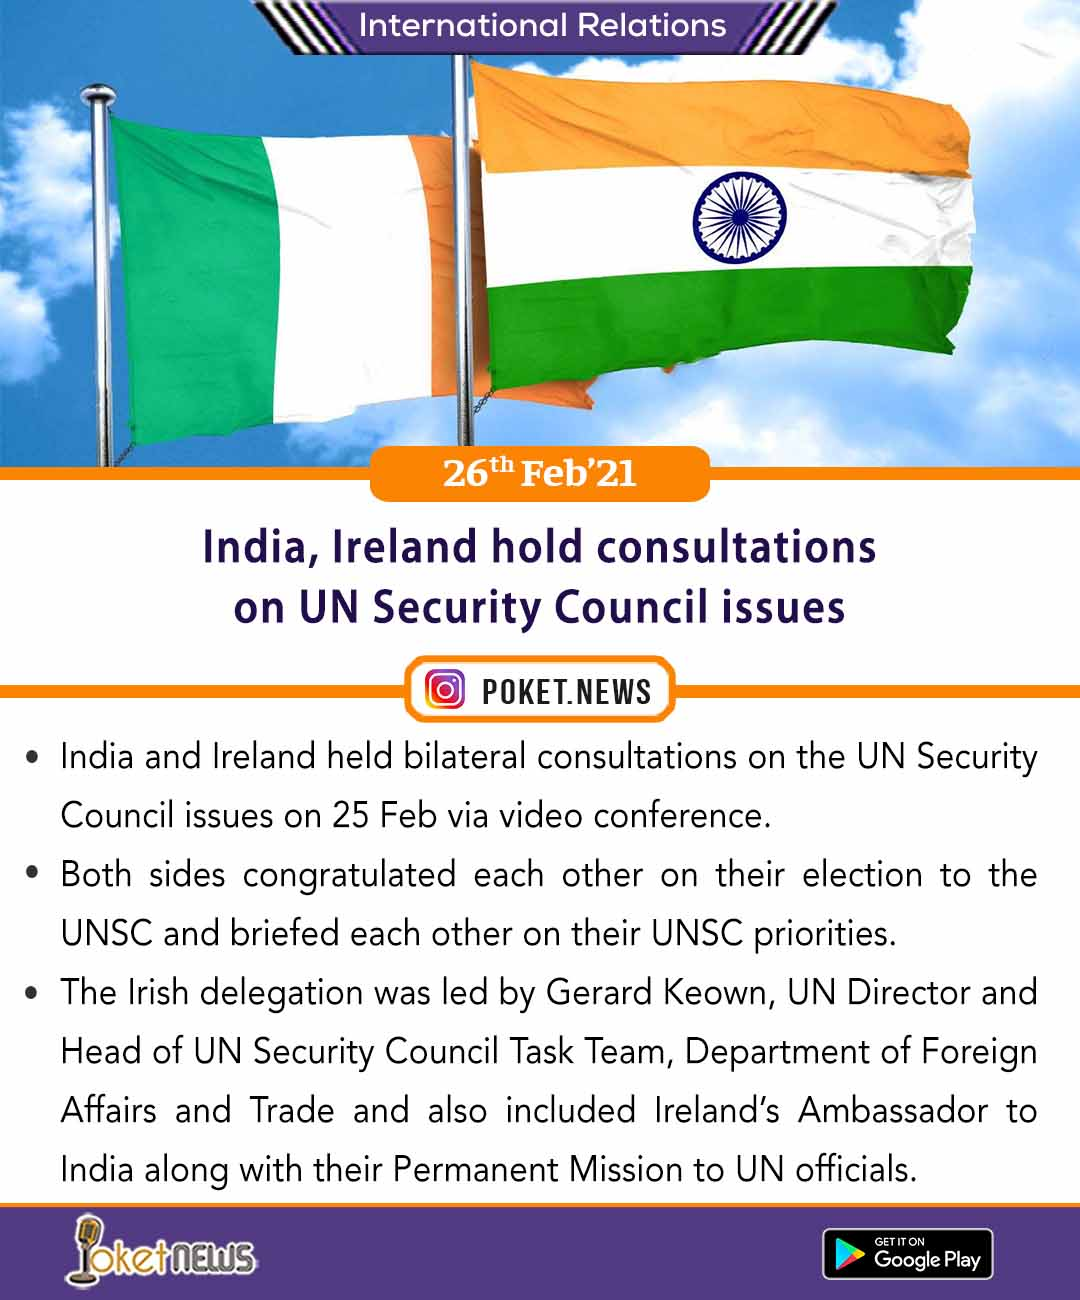 India, Ireland hold consultations on UN Security Council issues